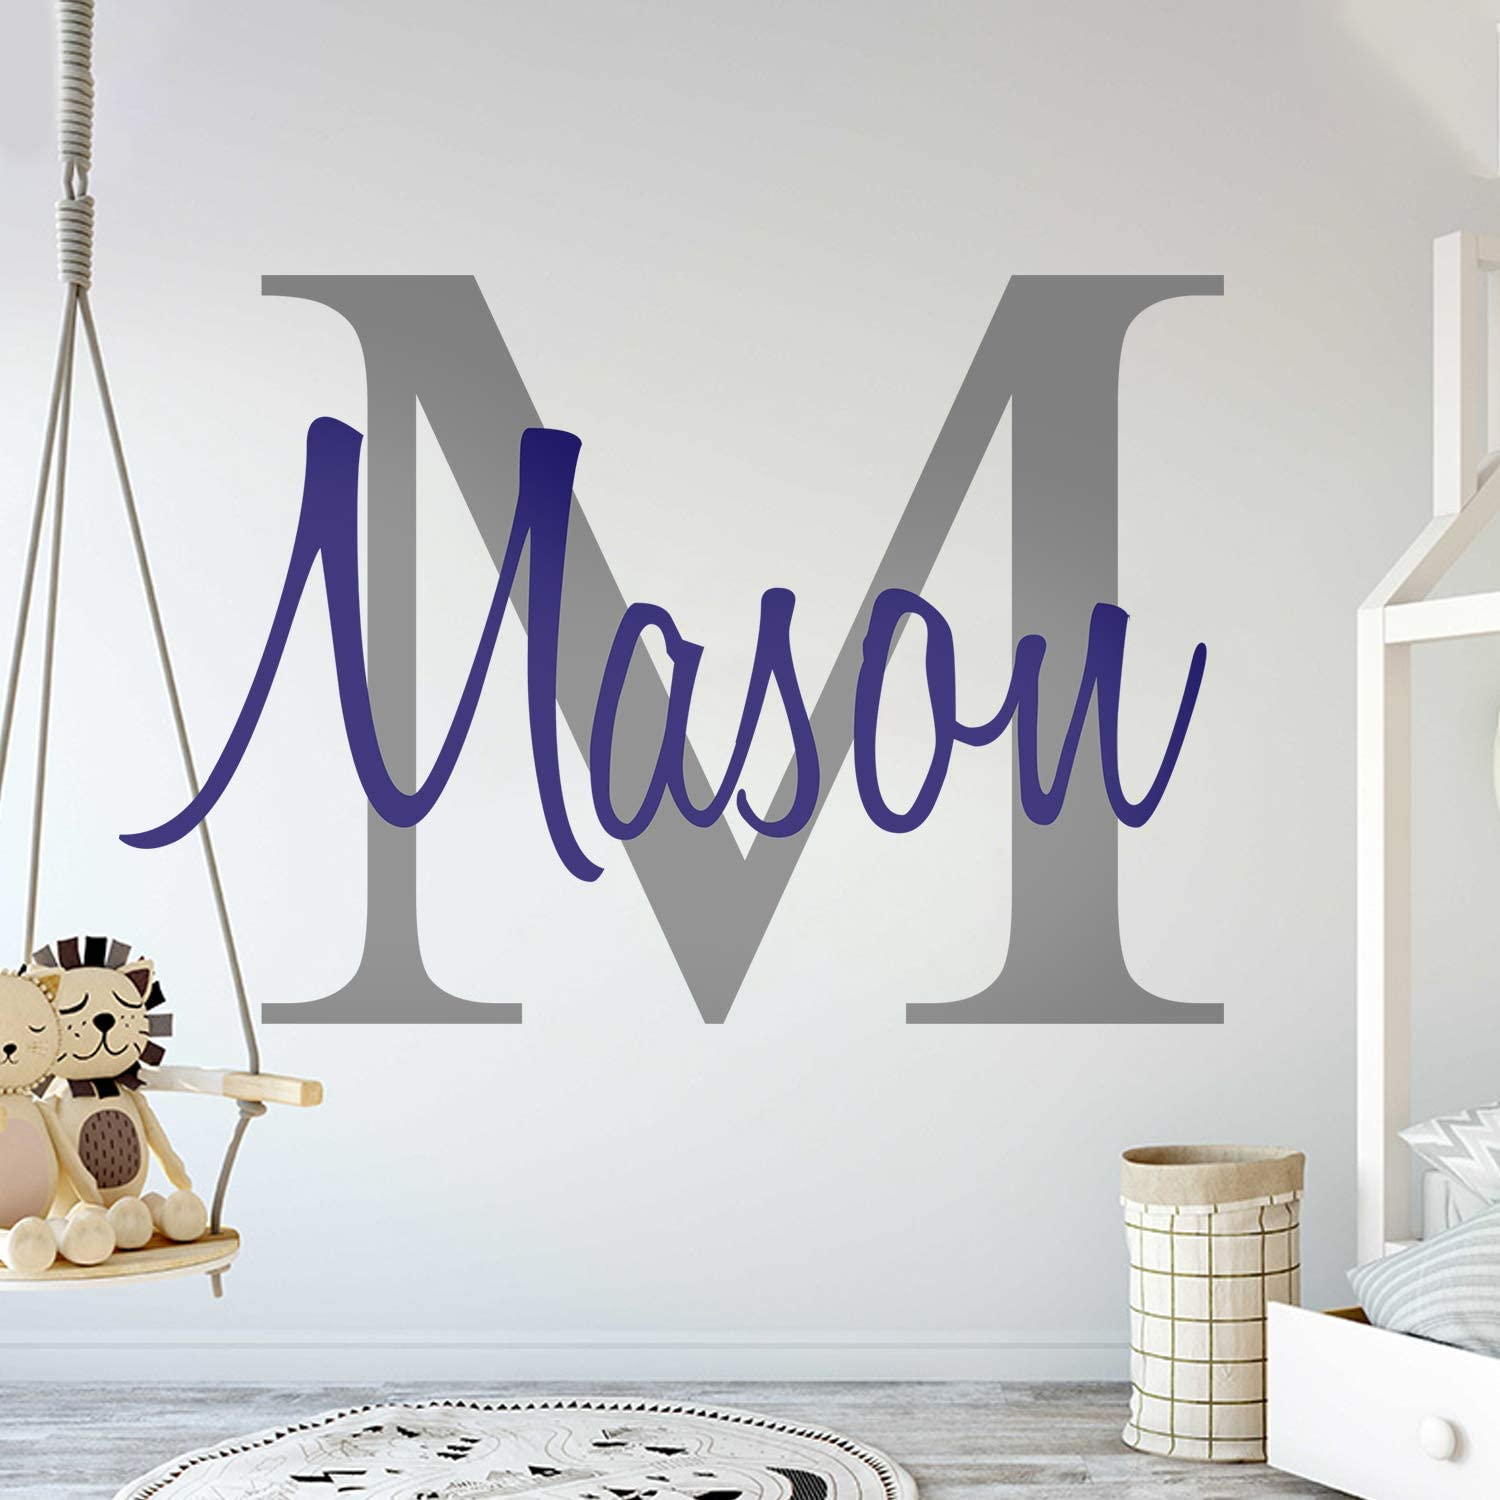 Custom Name & Initial - Premium Series - Baby Boy - Wall Decal Nursery for Home Bedroom Children (M511) (Wide 22